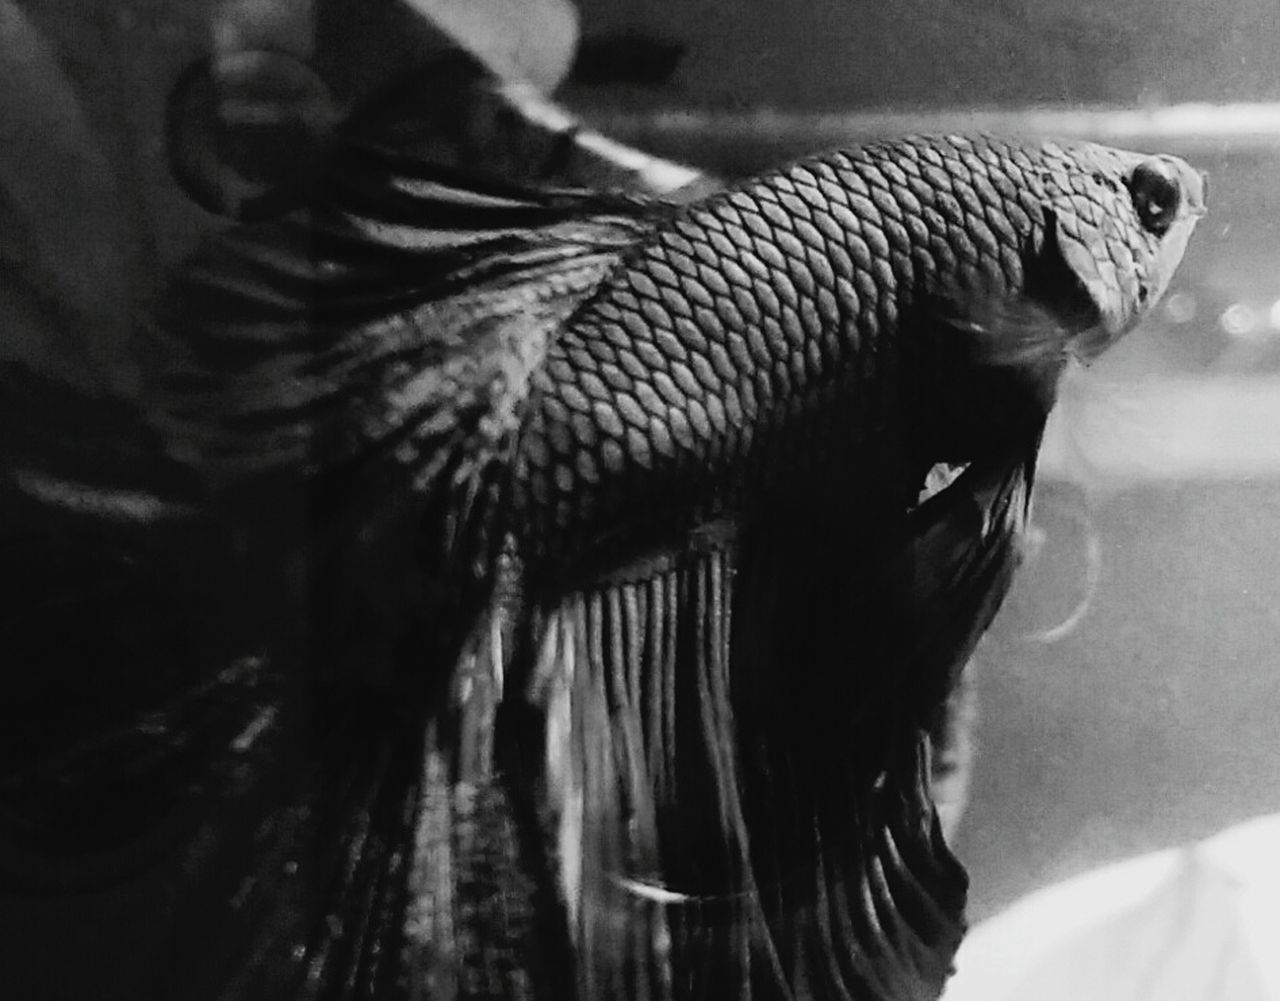 My workplace fish! His name is Tyr. He's a betta in a 5.5g heated & filtered tank. Betta Fish Betta  Bettafishcommunity First Eyeem Photo